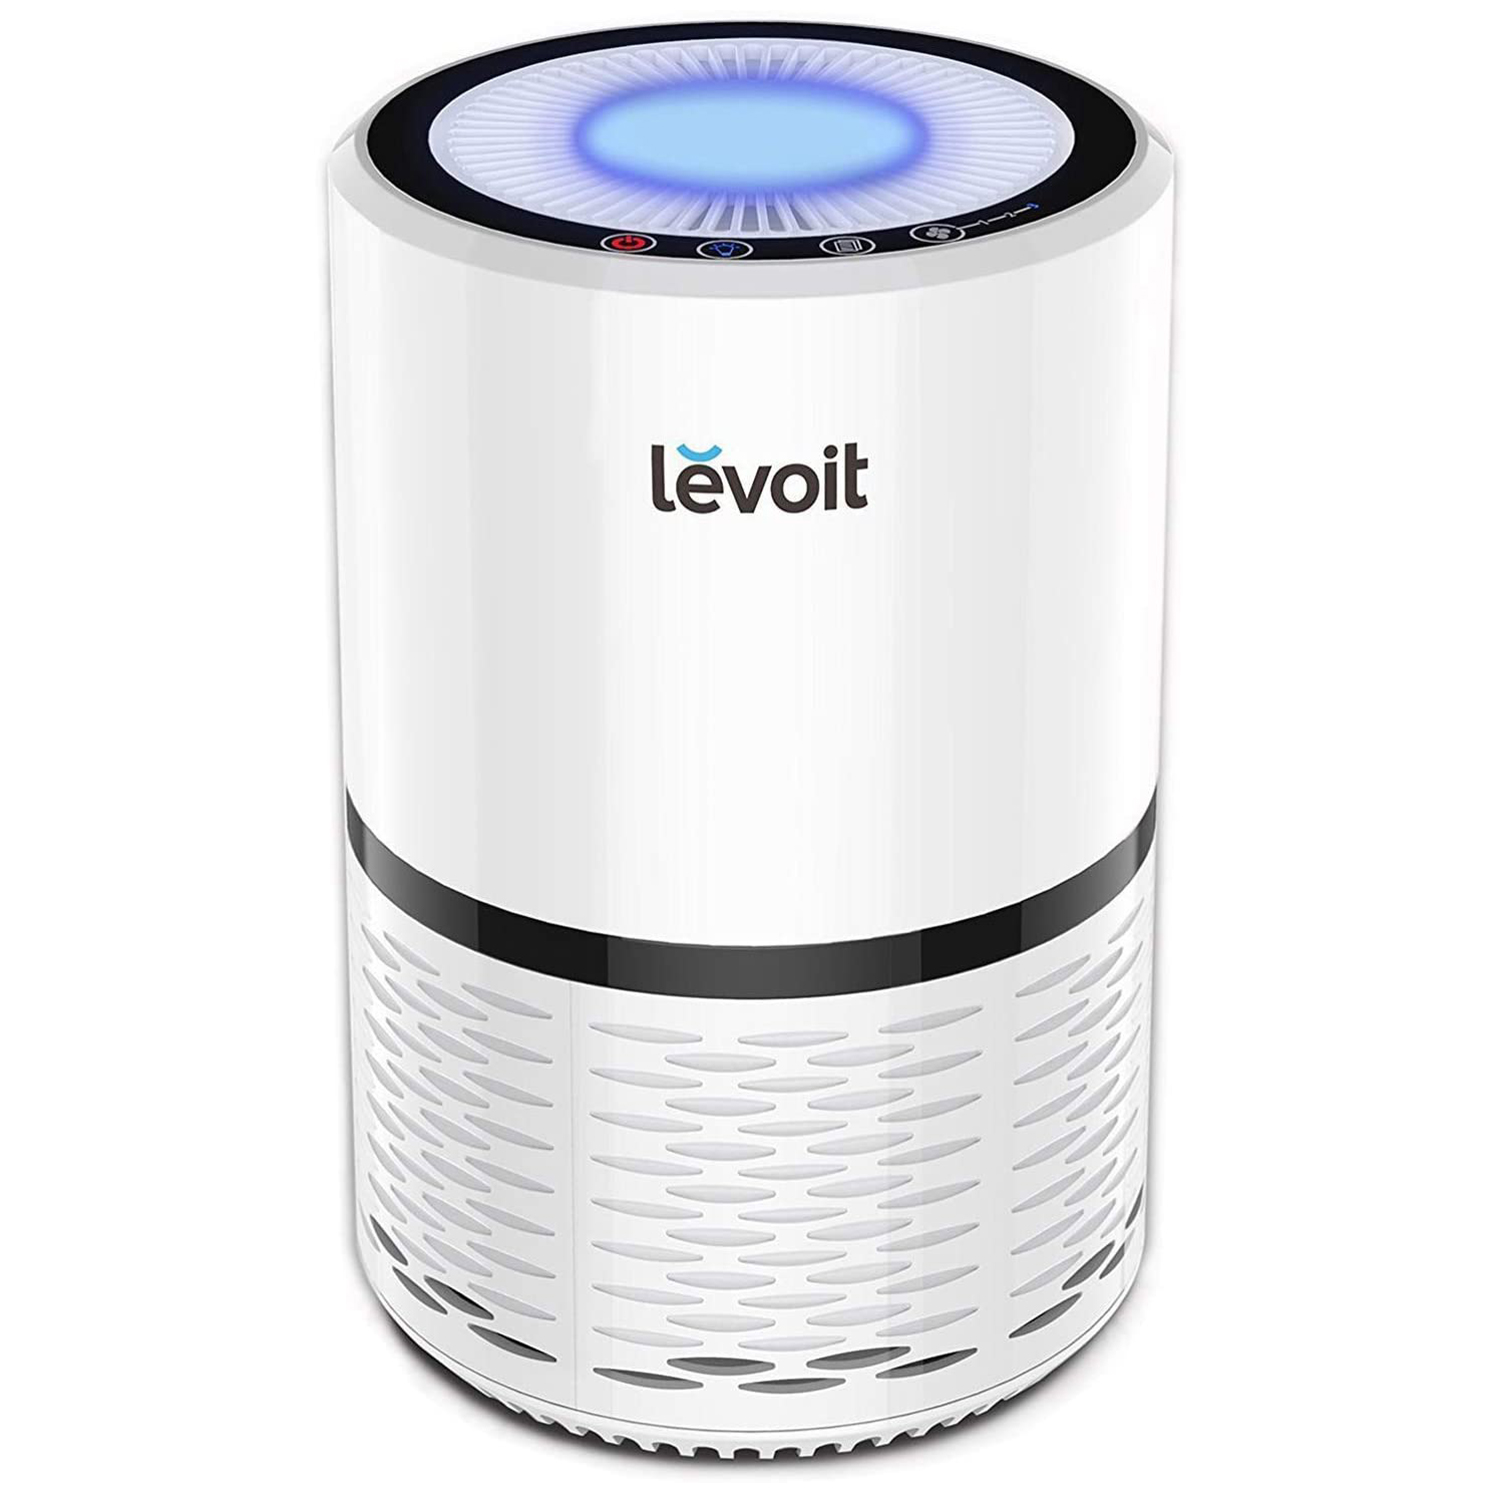 Best-Rated Air Purifier for Baby: Levoit Air Purifier for Home